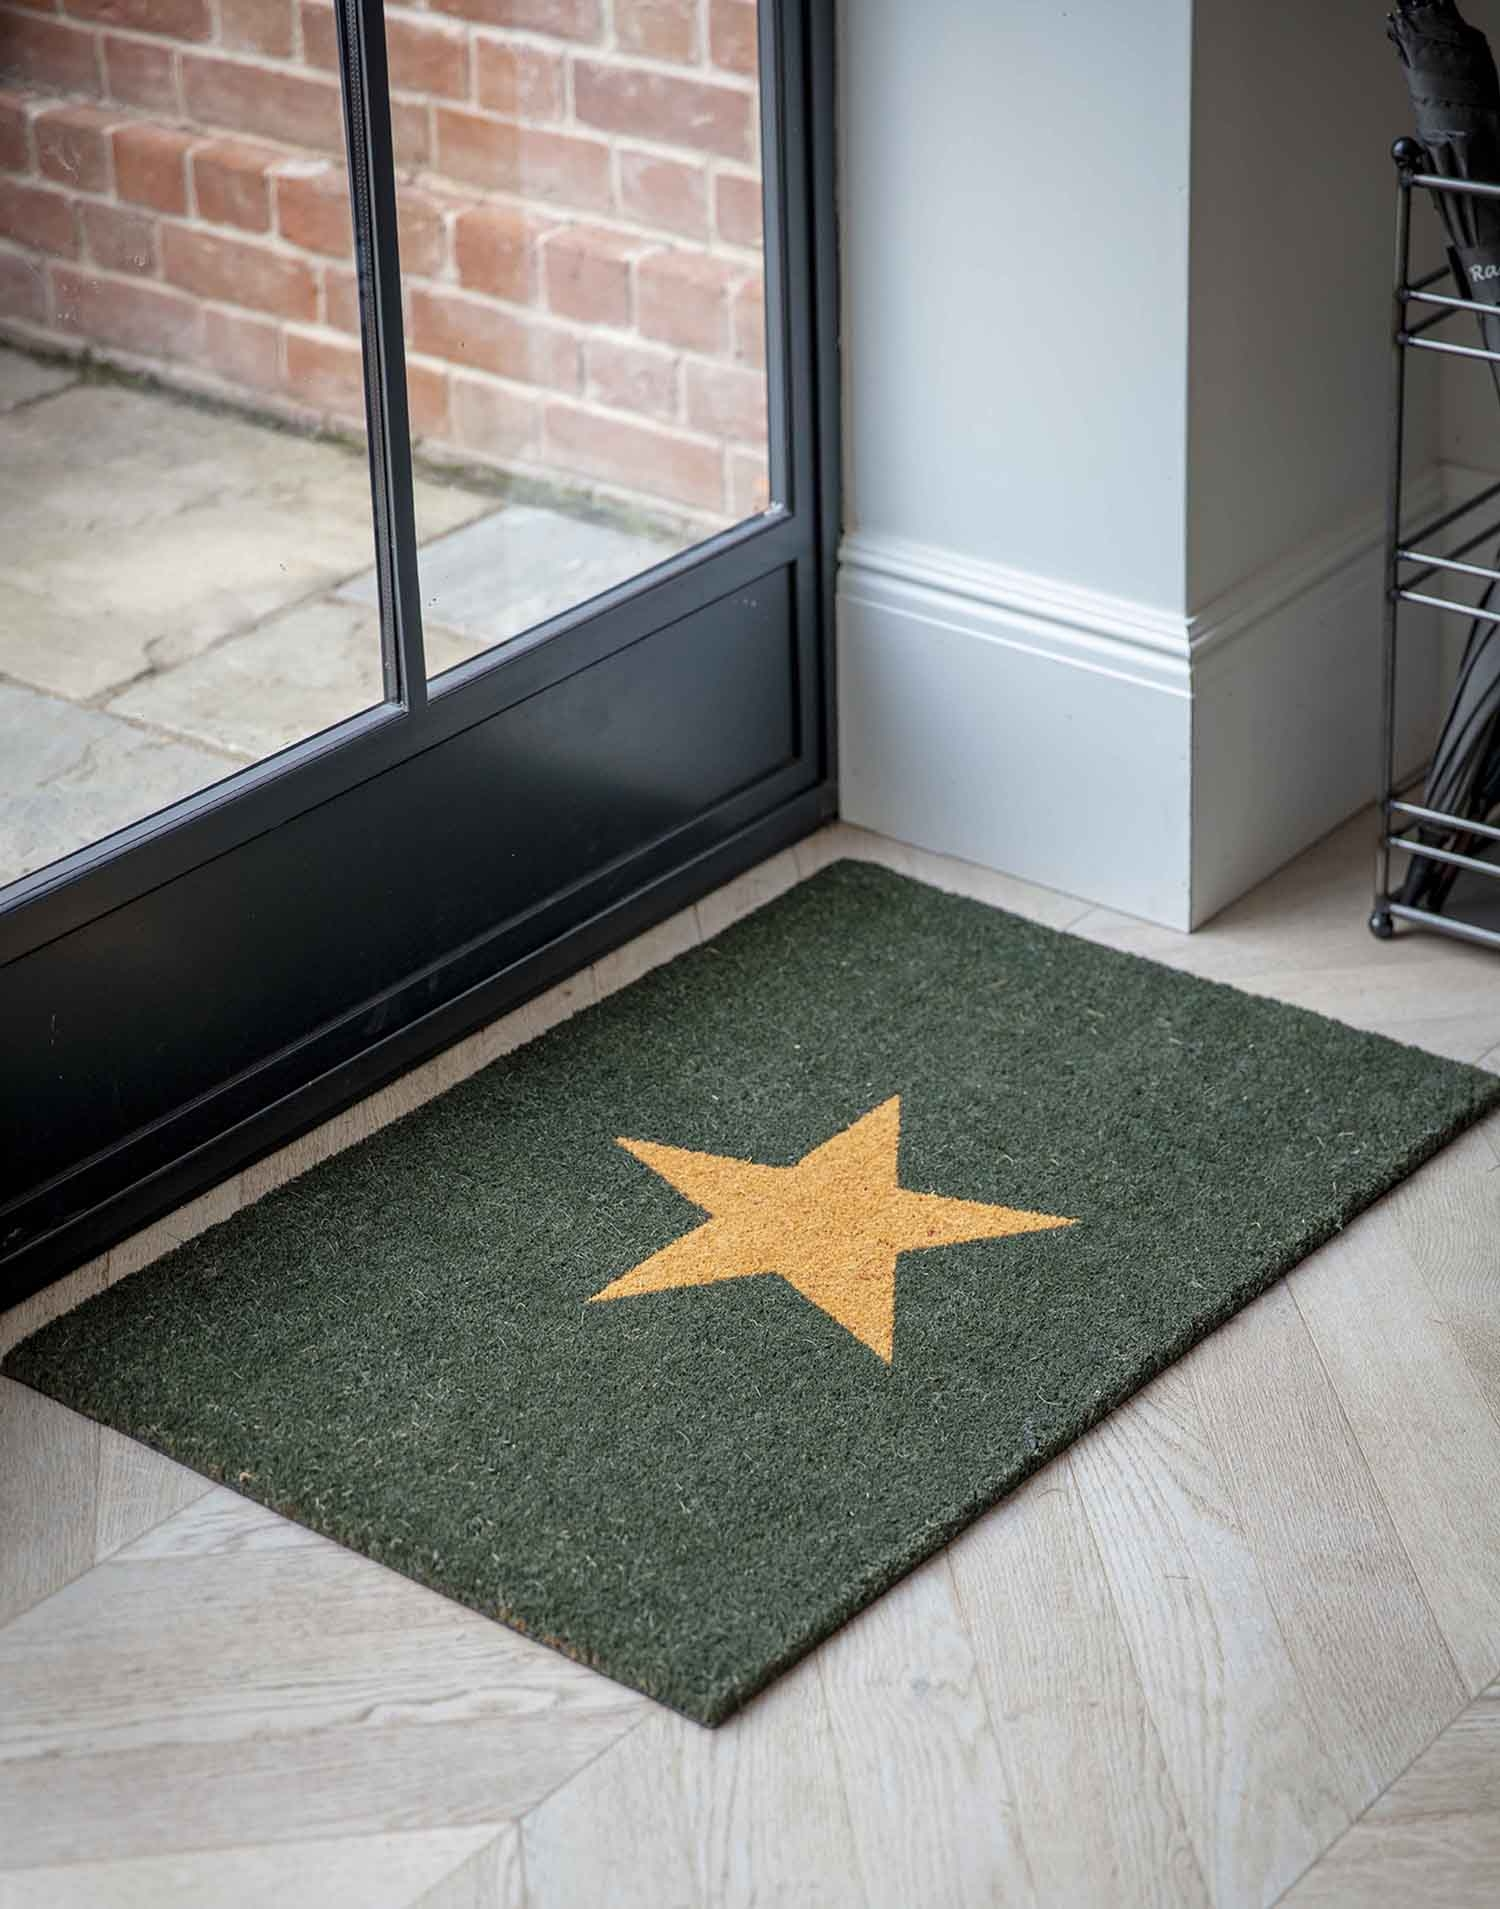 Image of Garden Trading Large Star Doormat, Forest Green